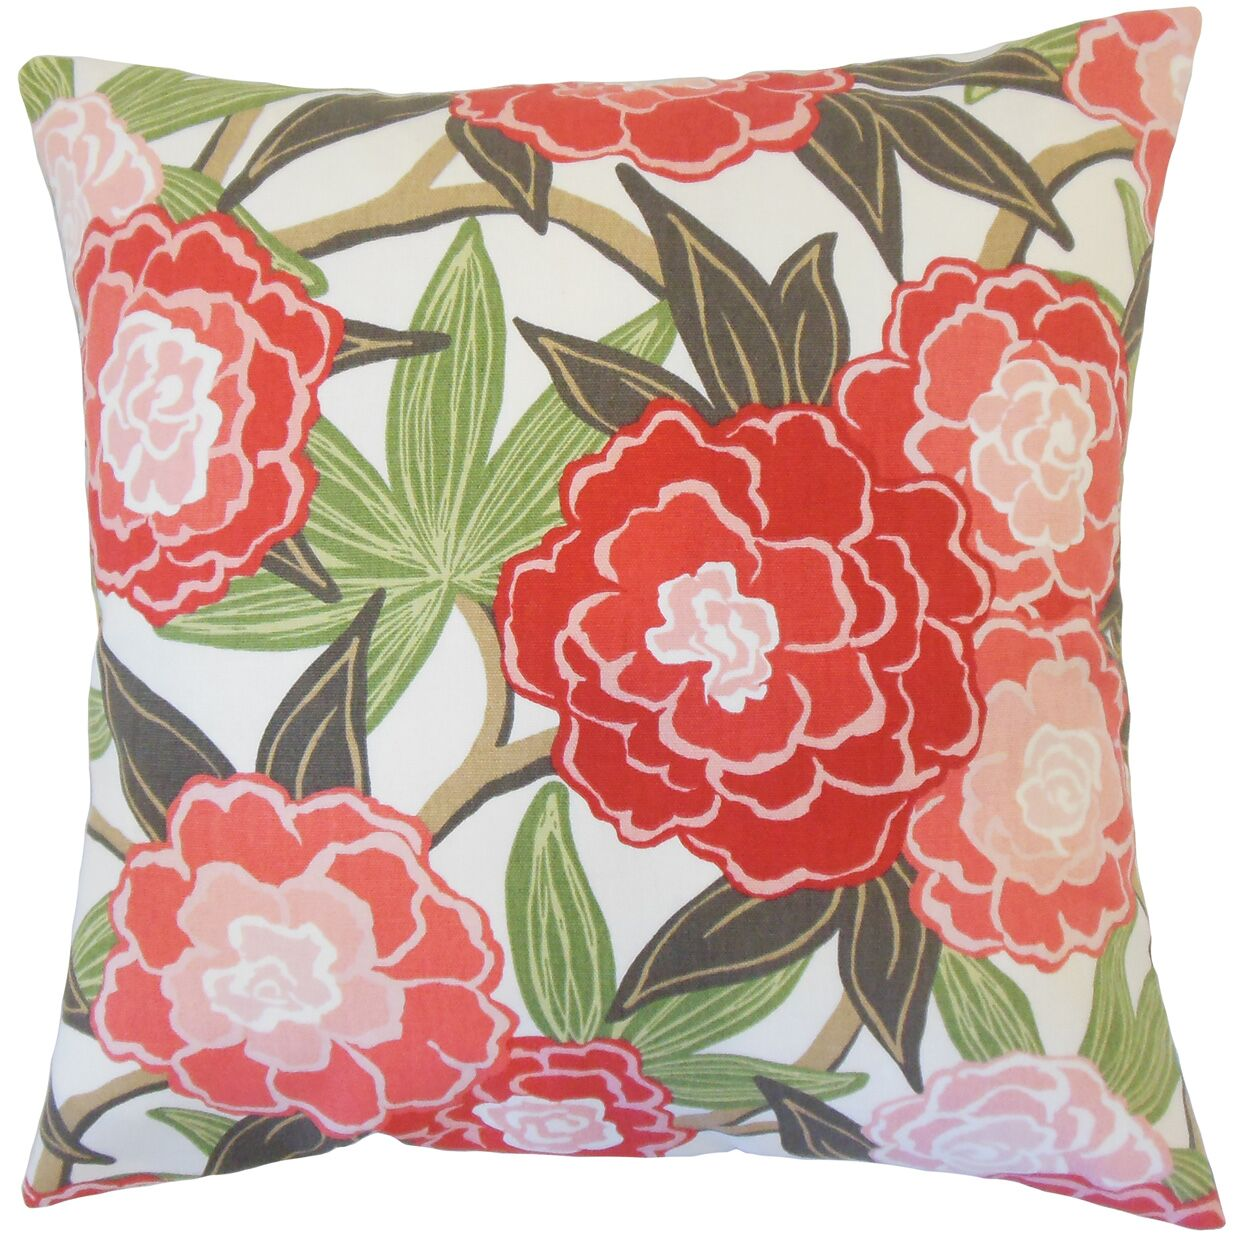 Iniabi Floral Cotton Throw Pillow Color: Coral, Size: 22